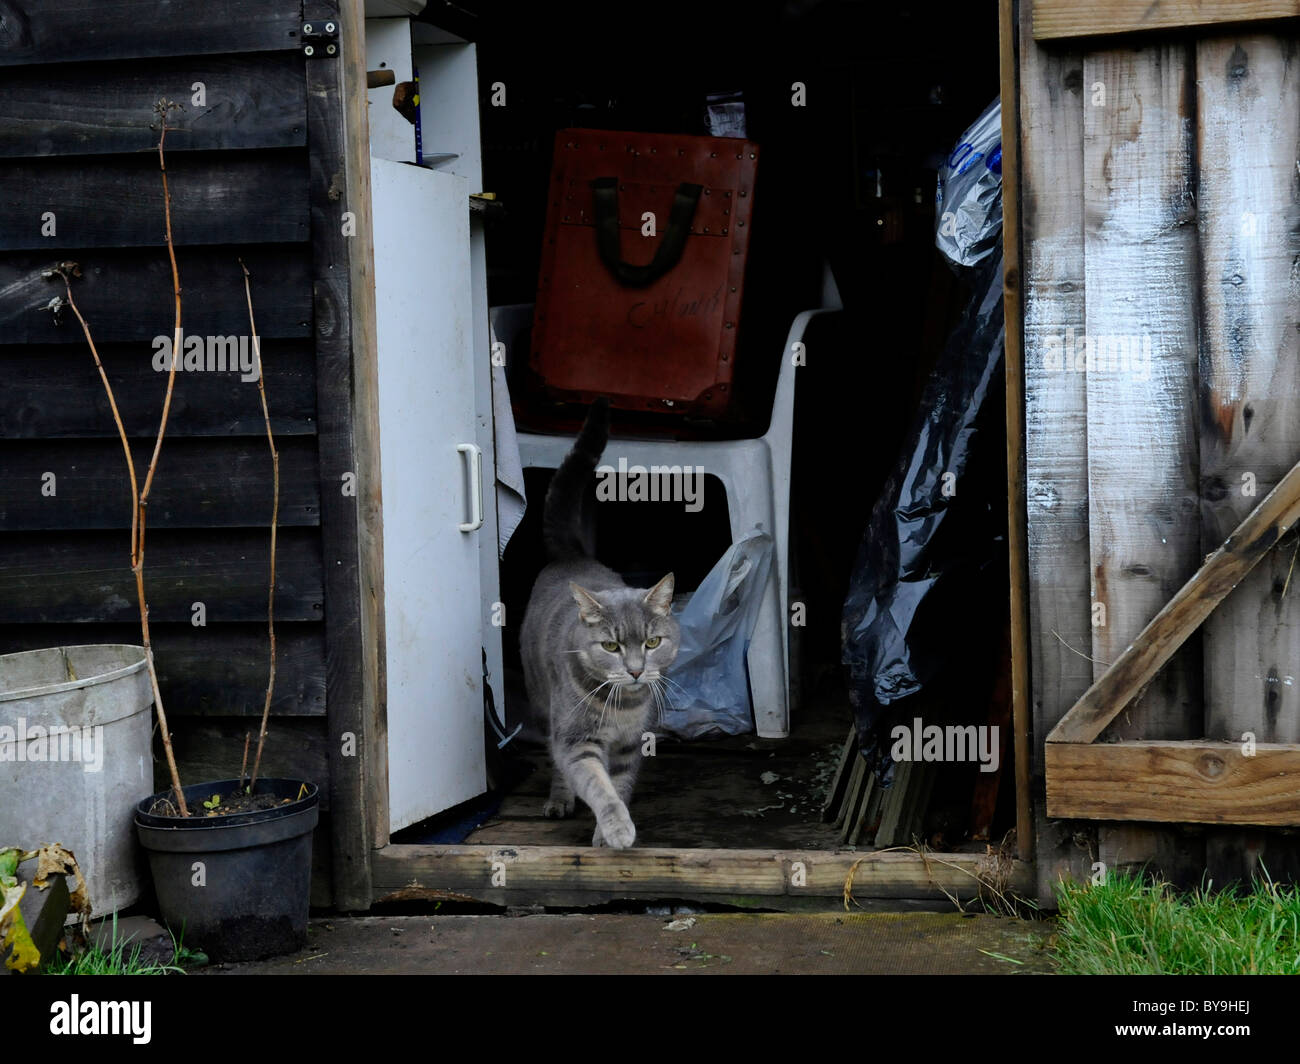 A cat in a shed on the alottment. - Stock Image